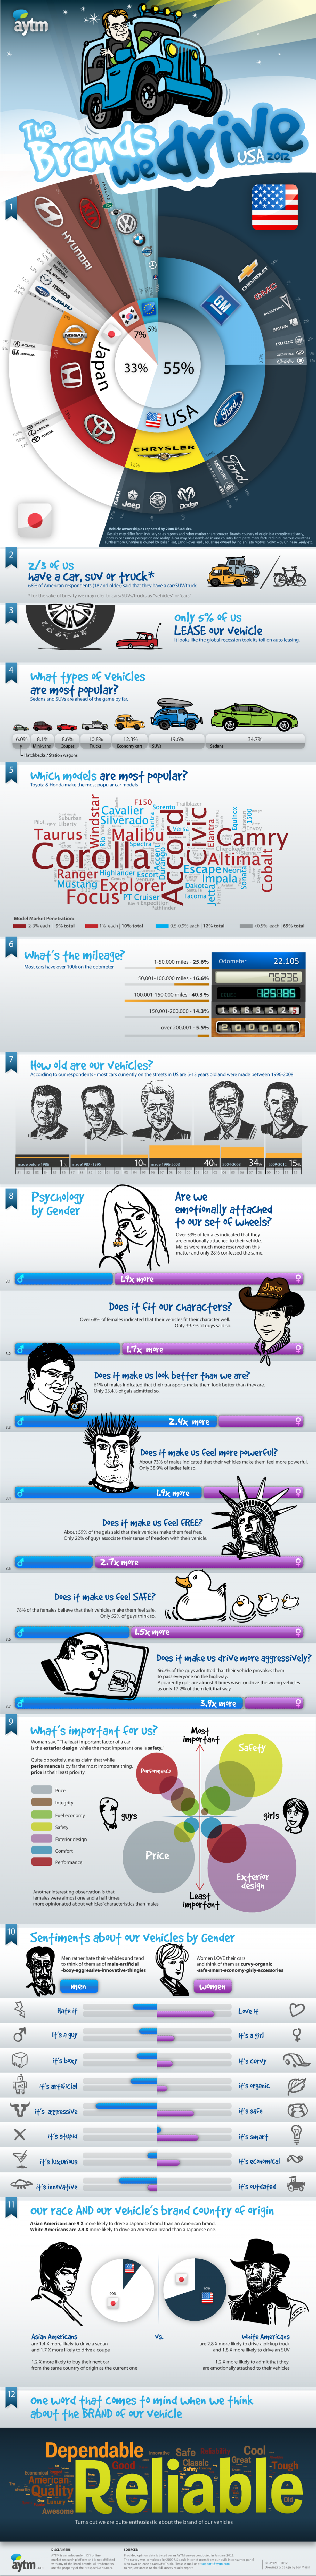 The Brands We Drive Infographic